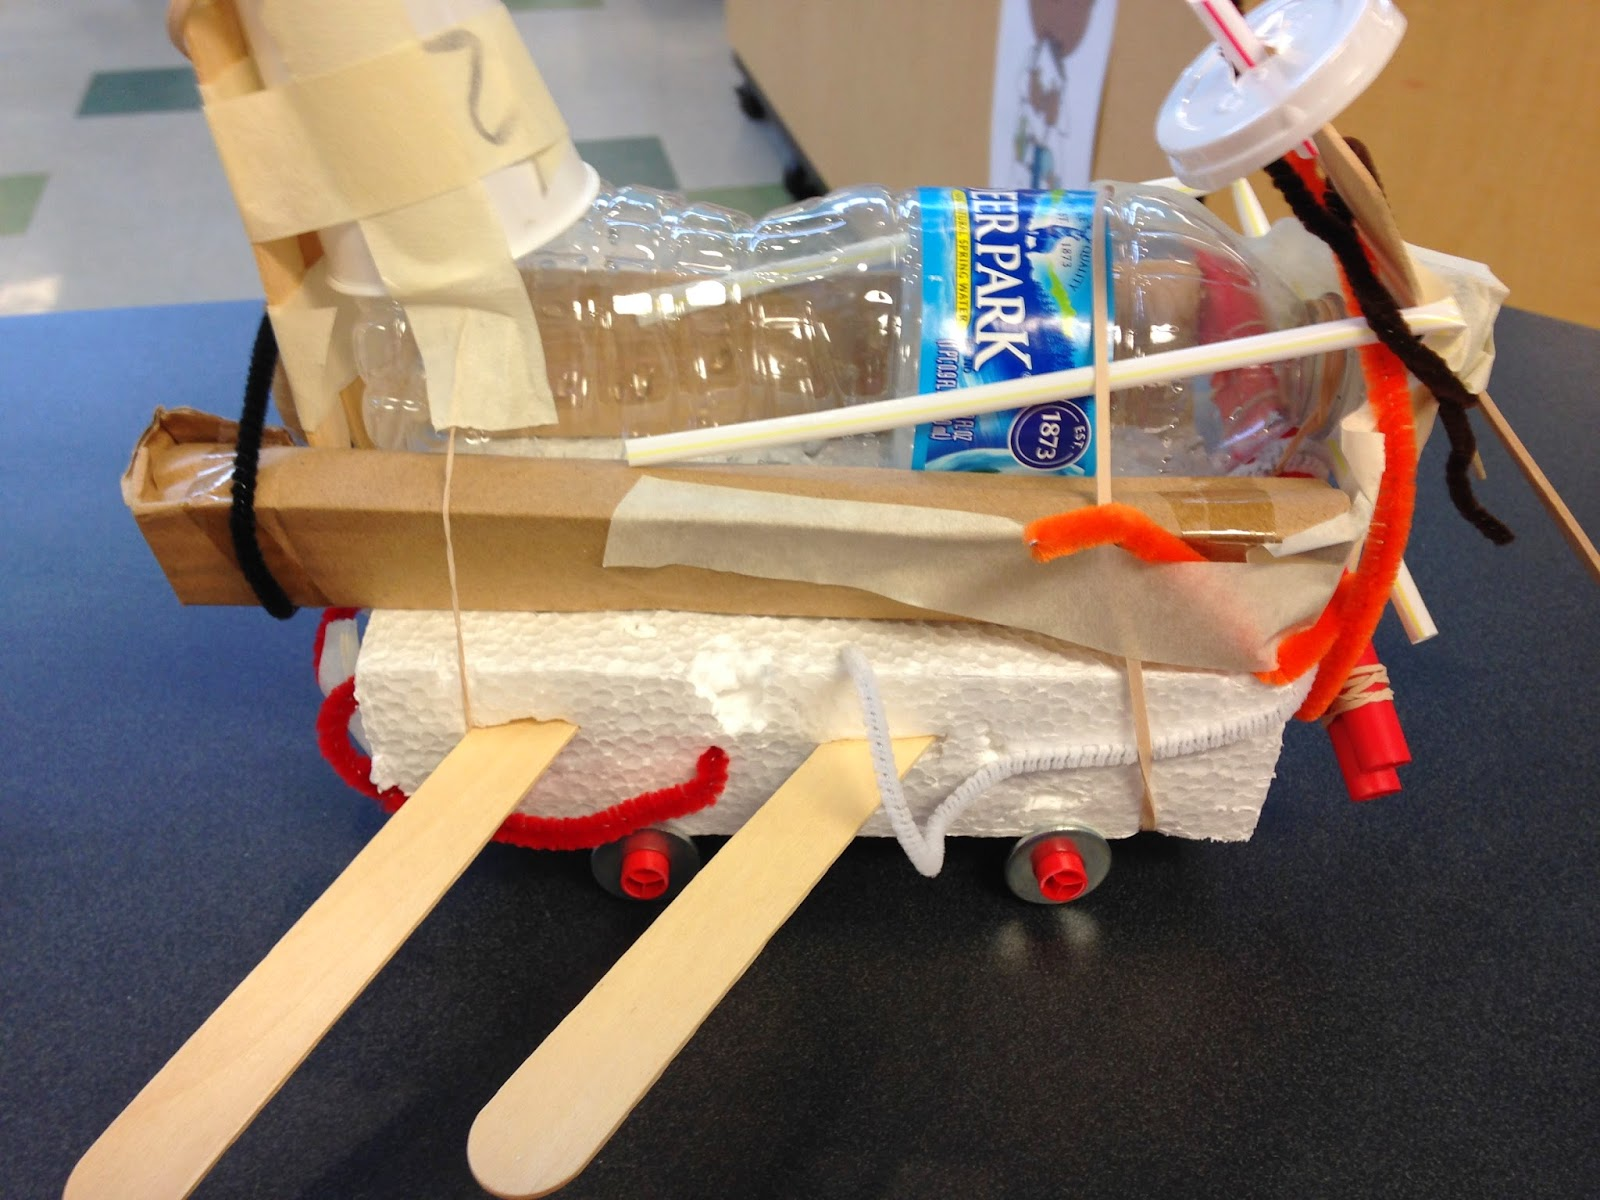 STEM Challenge: All about building a car that rolls using some basic and simple materials.